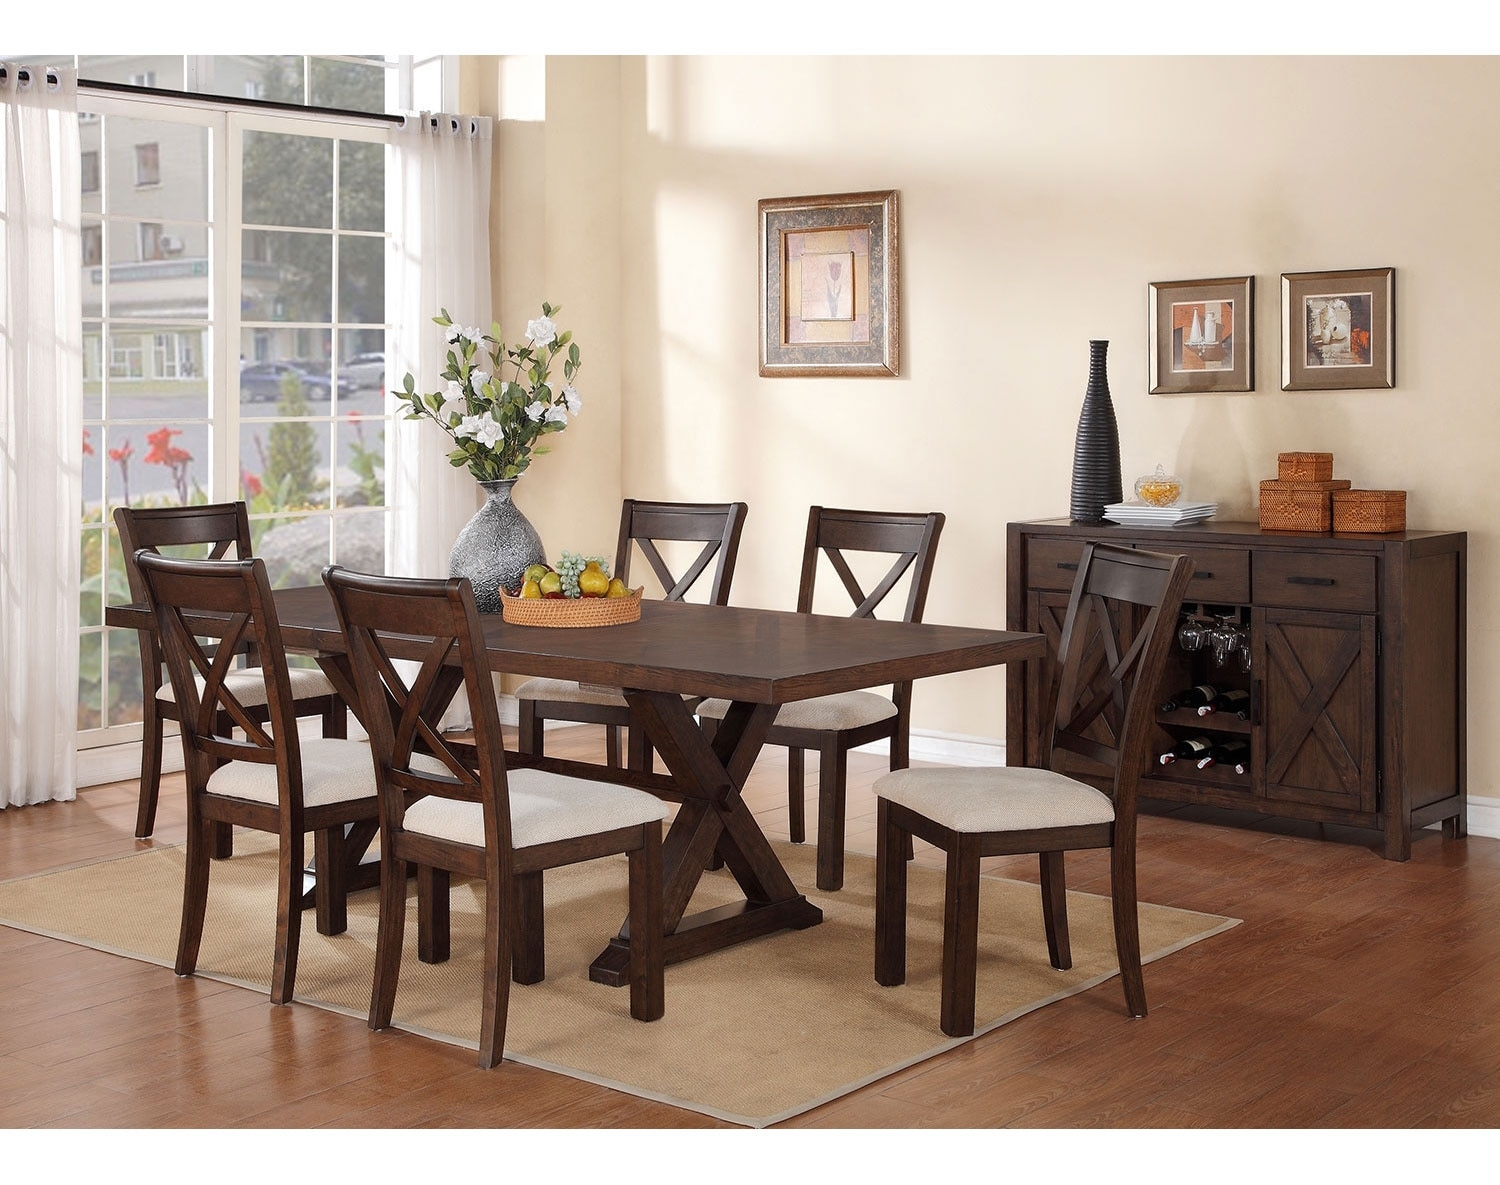 Claira 7 piece dining room set rustic brown leon 39 s - Dining room sets ...